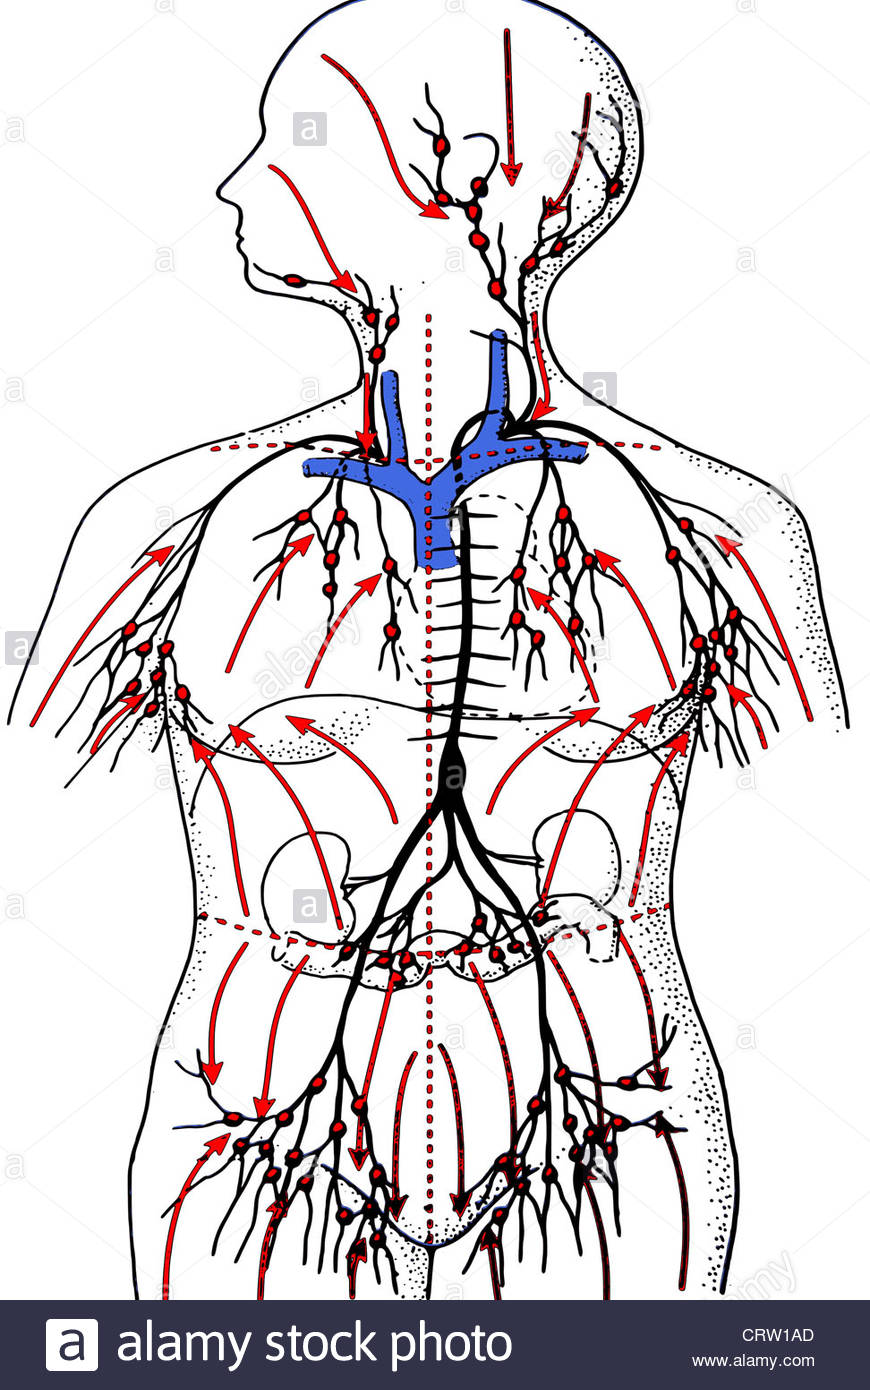 870x1390 The Lymphatic System Stock Photo 49107701